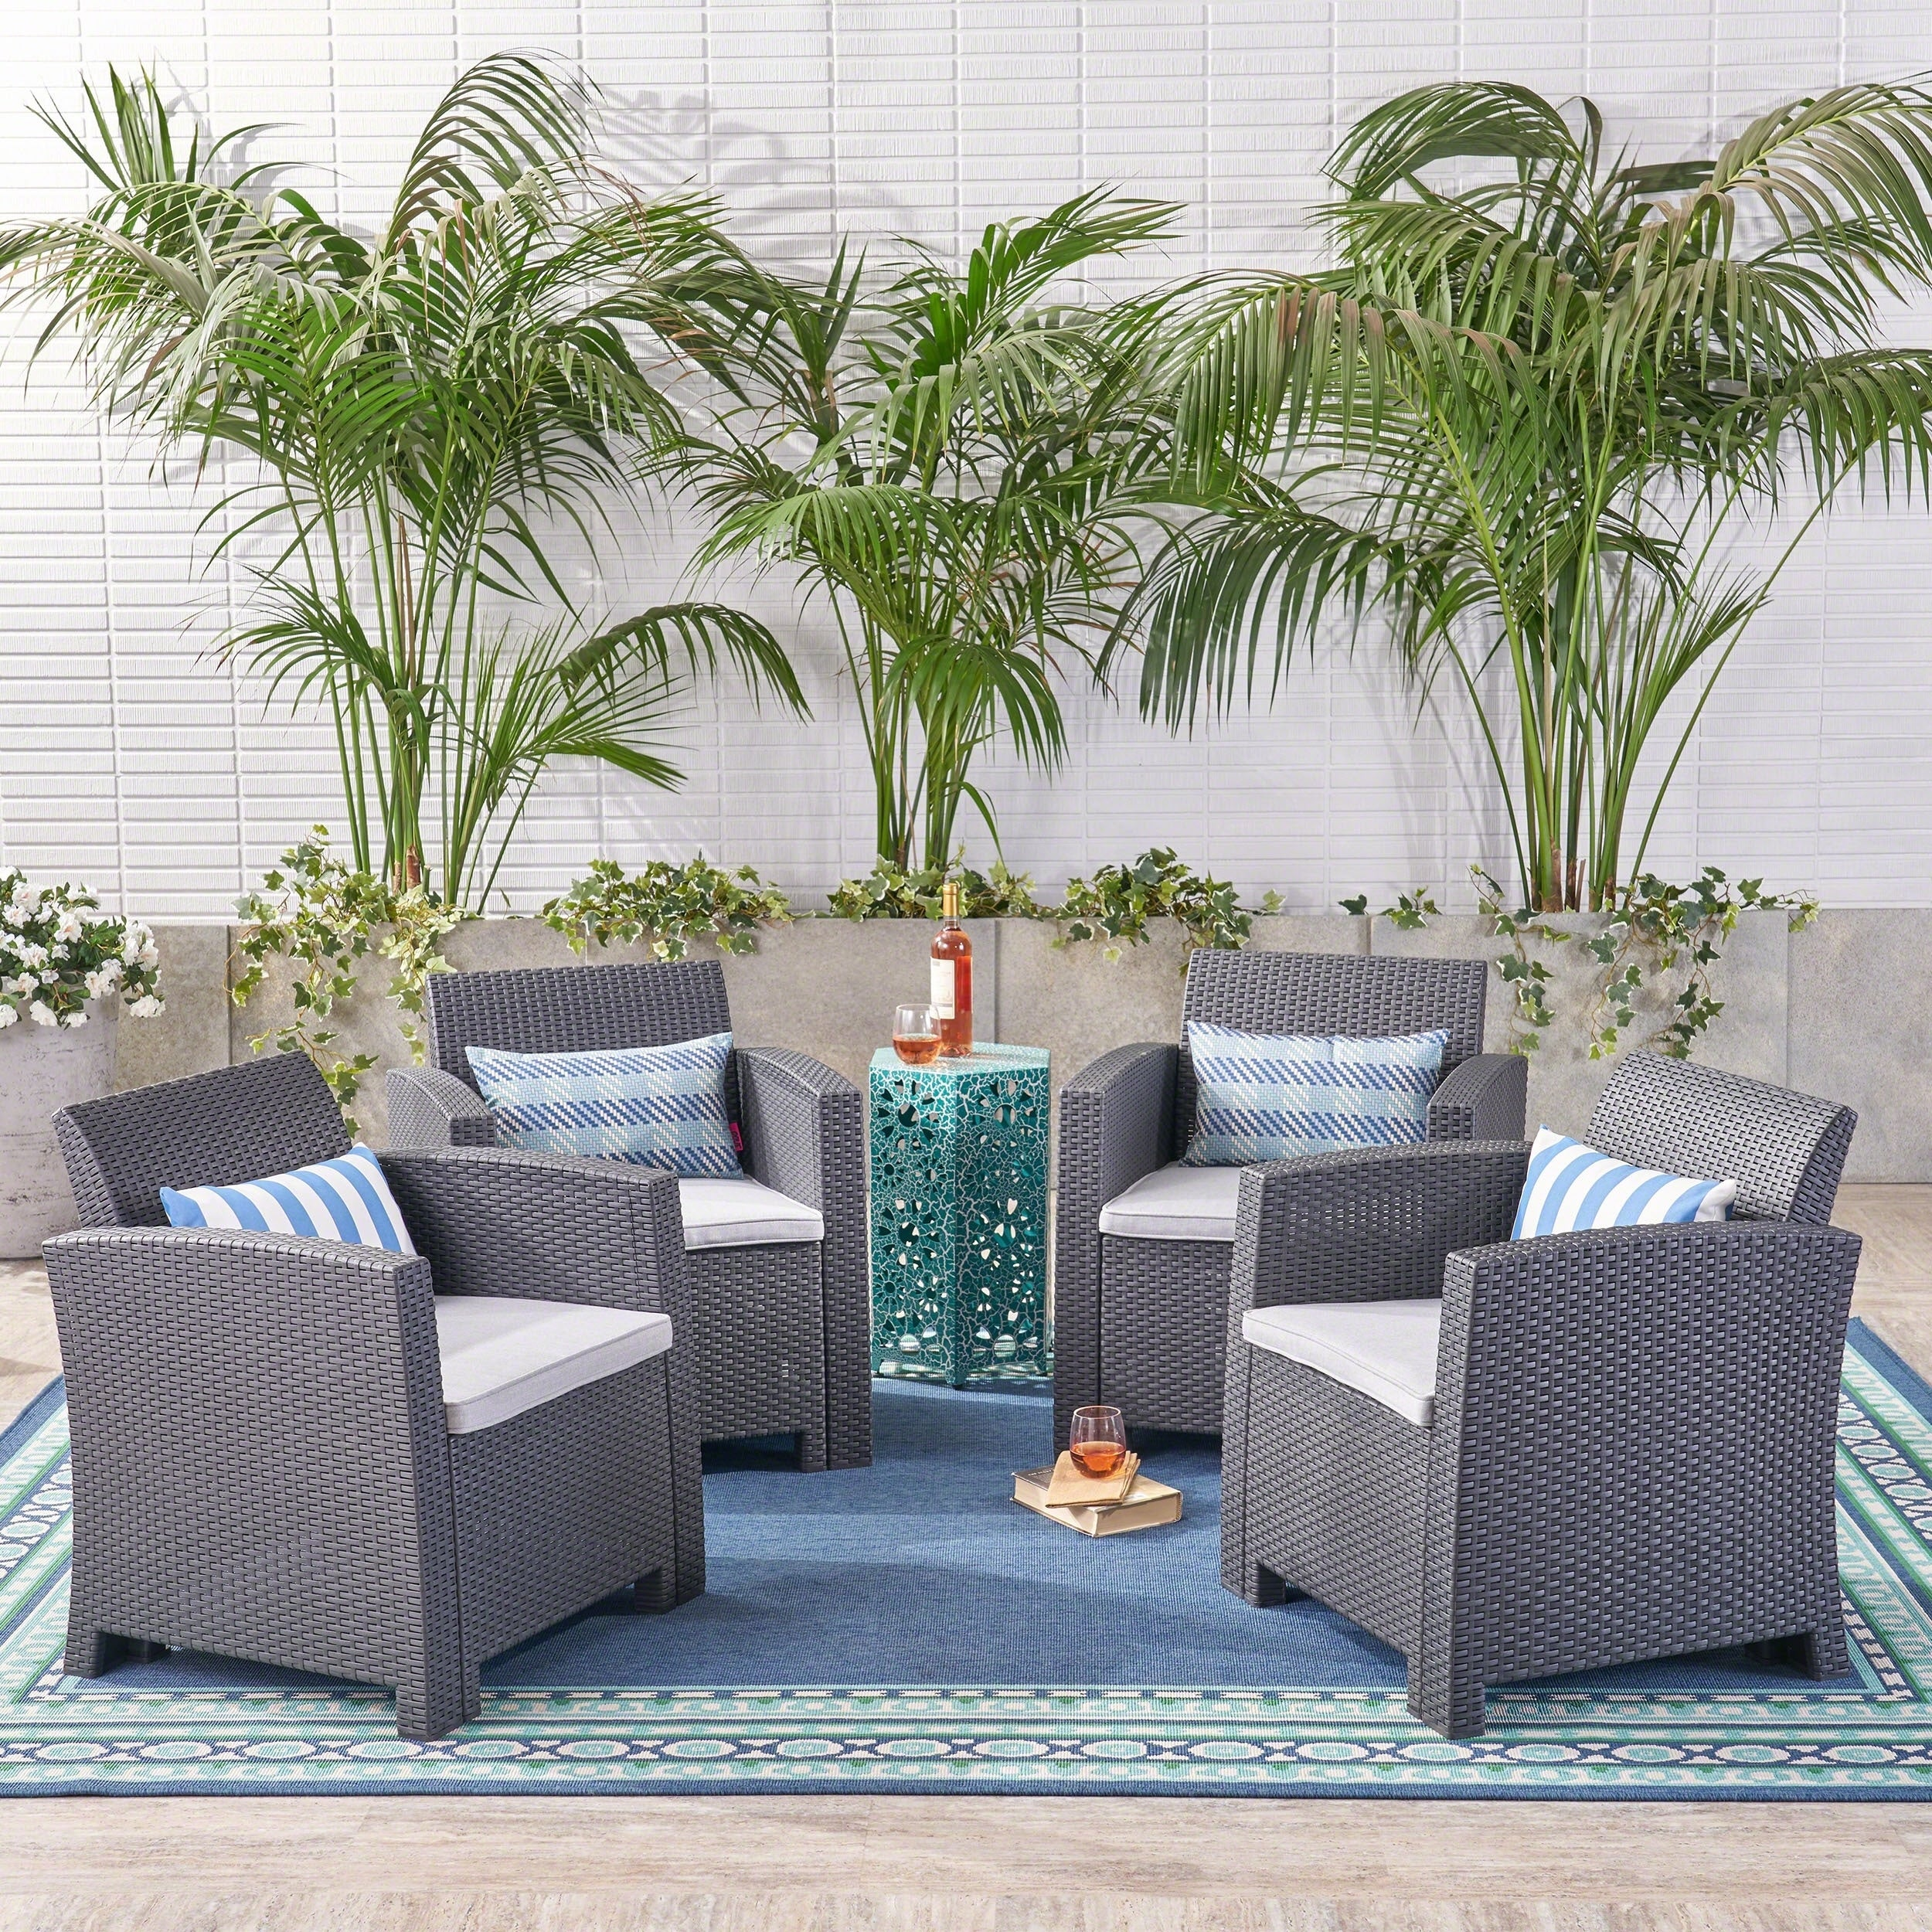 St Johns Outdoor Faux Wicker Print Club Chair With Cushions Set Of 4 By Christopher Knight Home On Sale Overstock 20523583